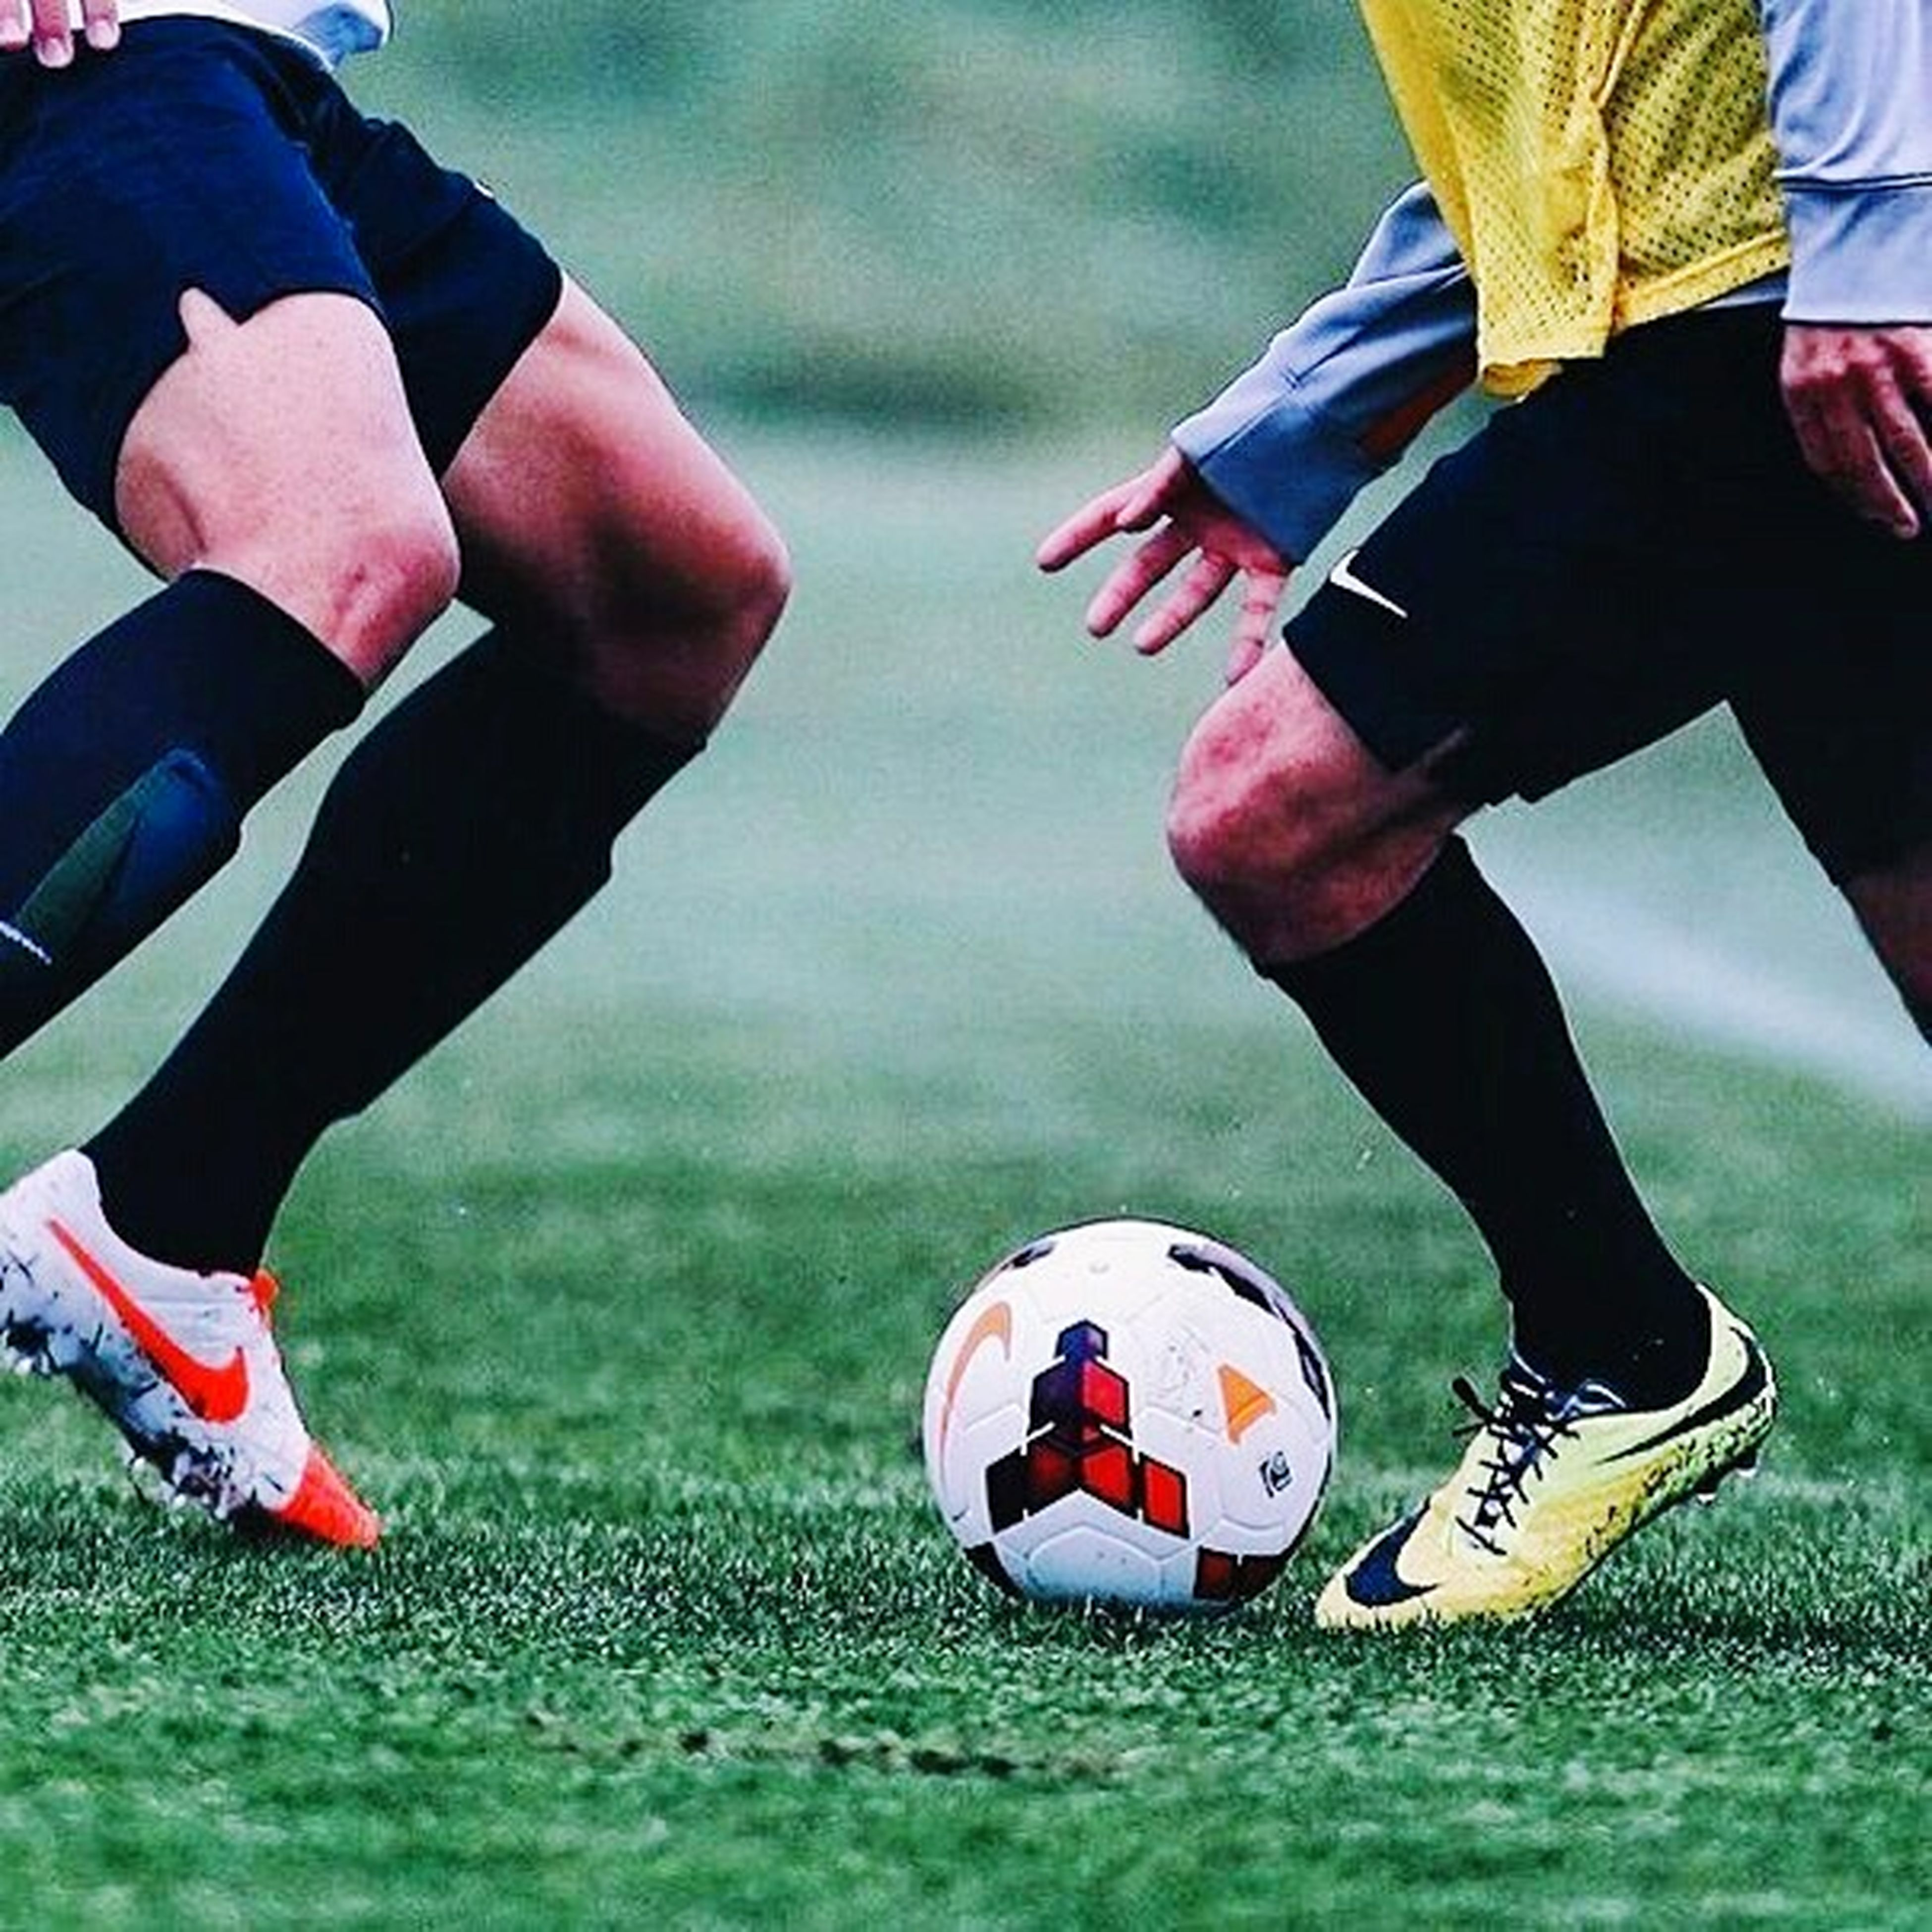 soccer, soccer ball, soccer field, ball, soccer player, sportsman, grass, people, kicking, young adult, only men, adult, low section, outdoors, human body part, adults only, soccer shoe, day